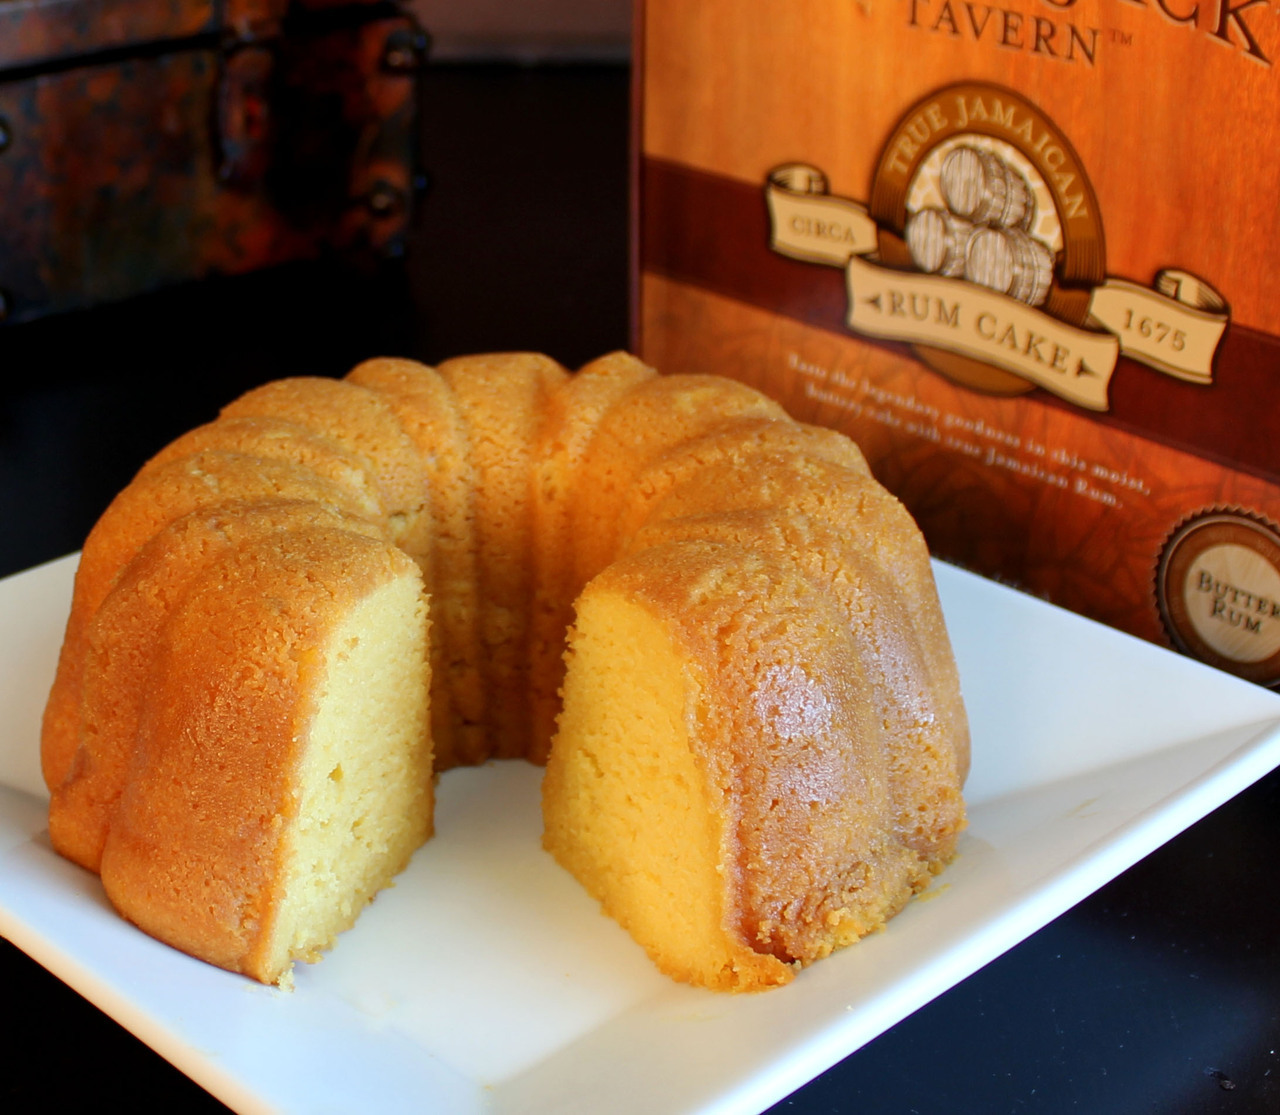 Carolina Coffee Wicked Jack's Tavern Rum Cake